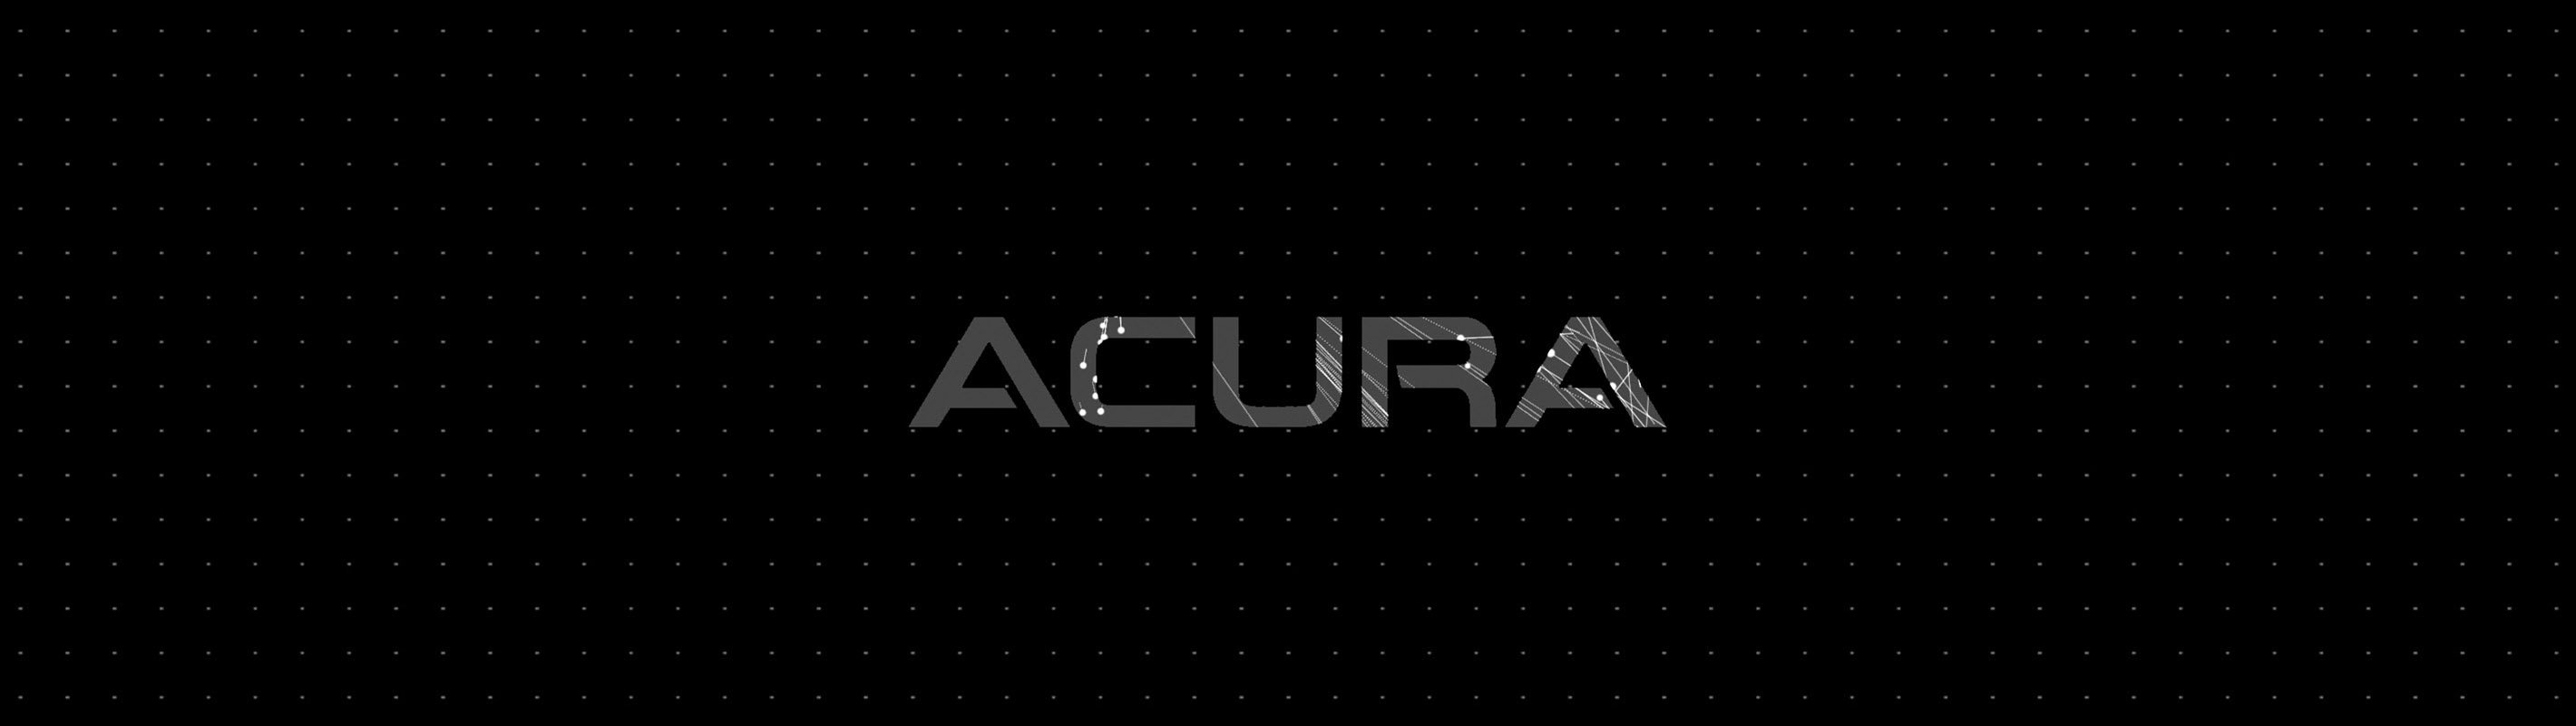 Acura brand film motion design